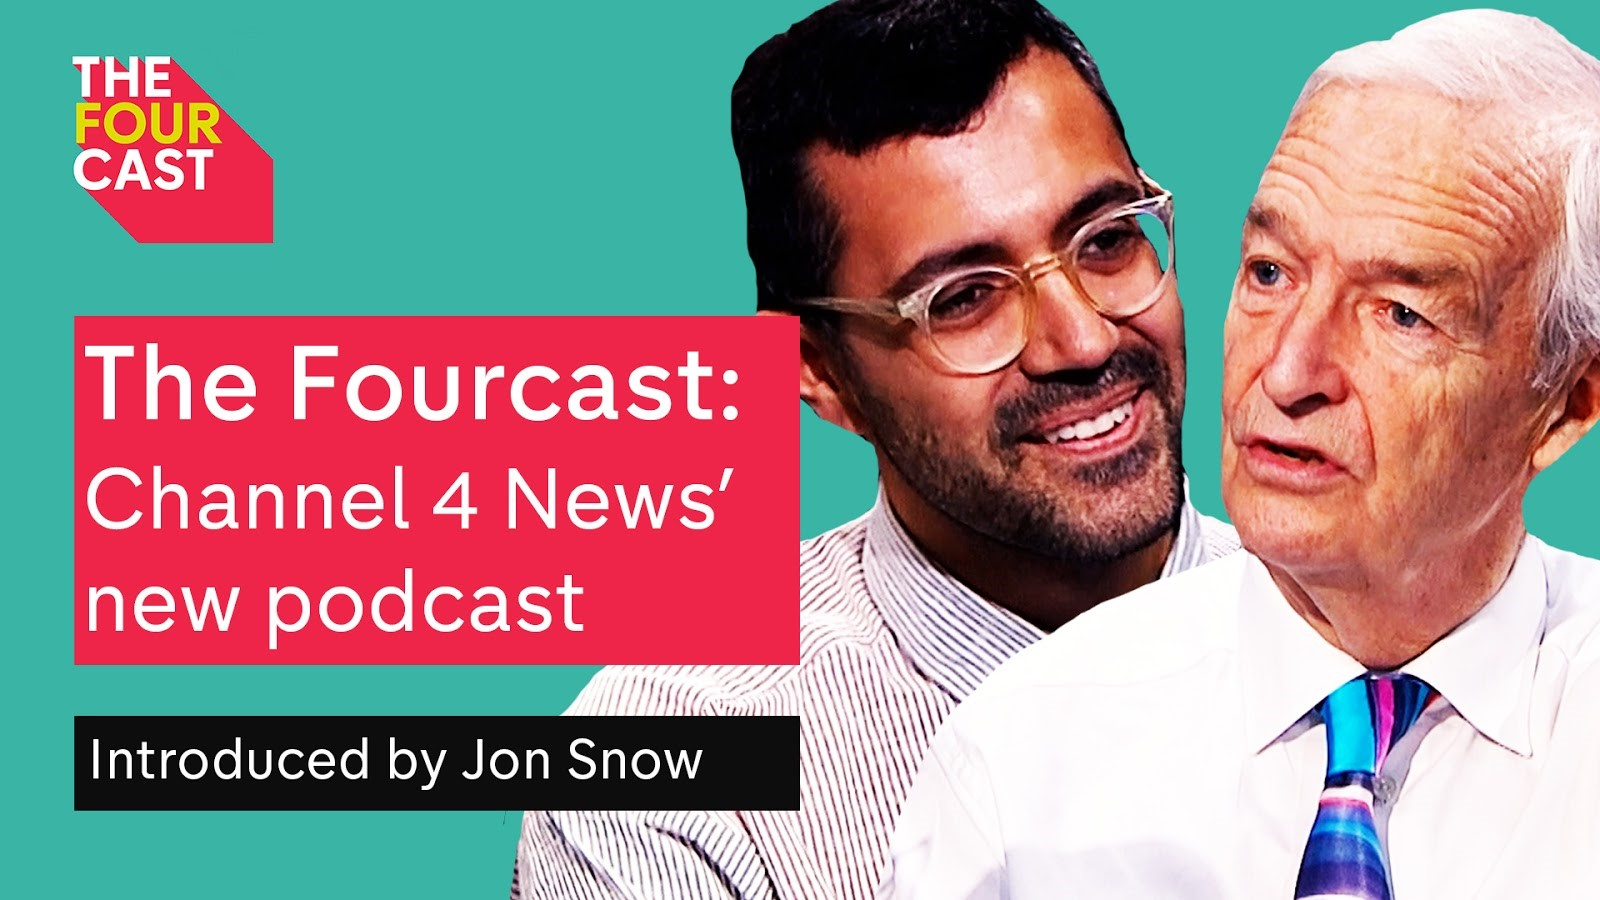 Channel 4 News launches new podcast 'The Fourcast'